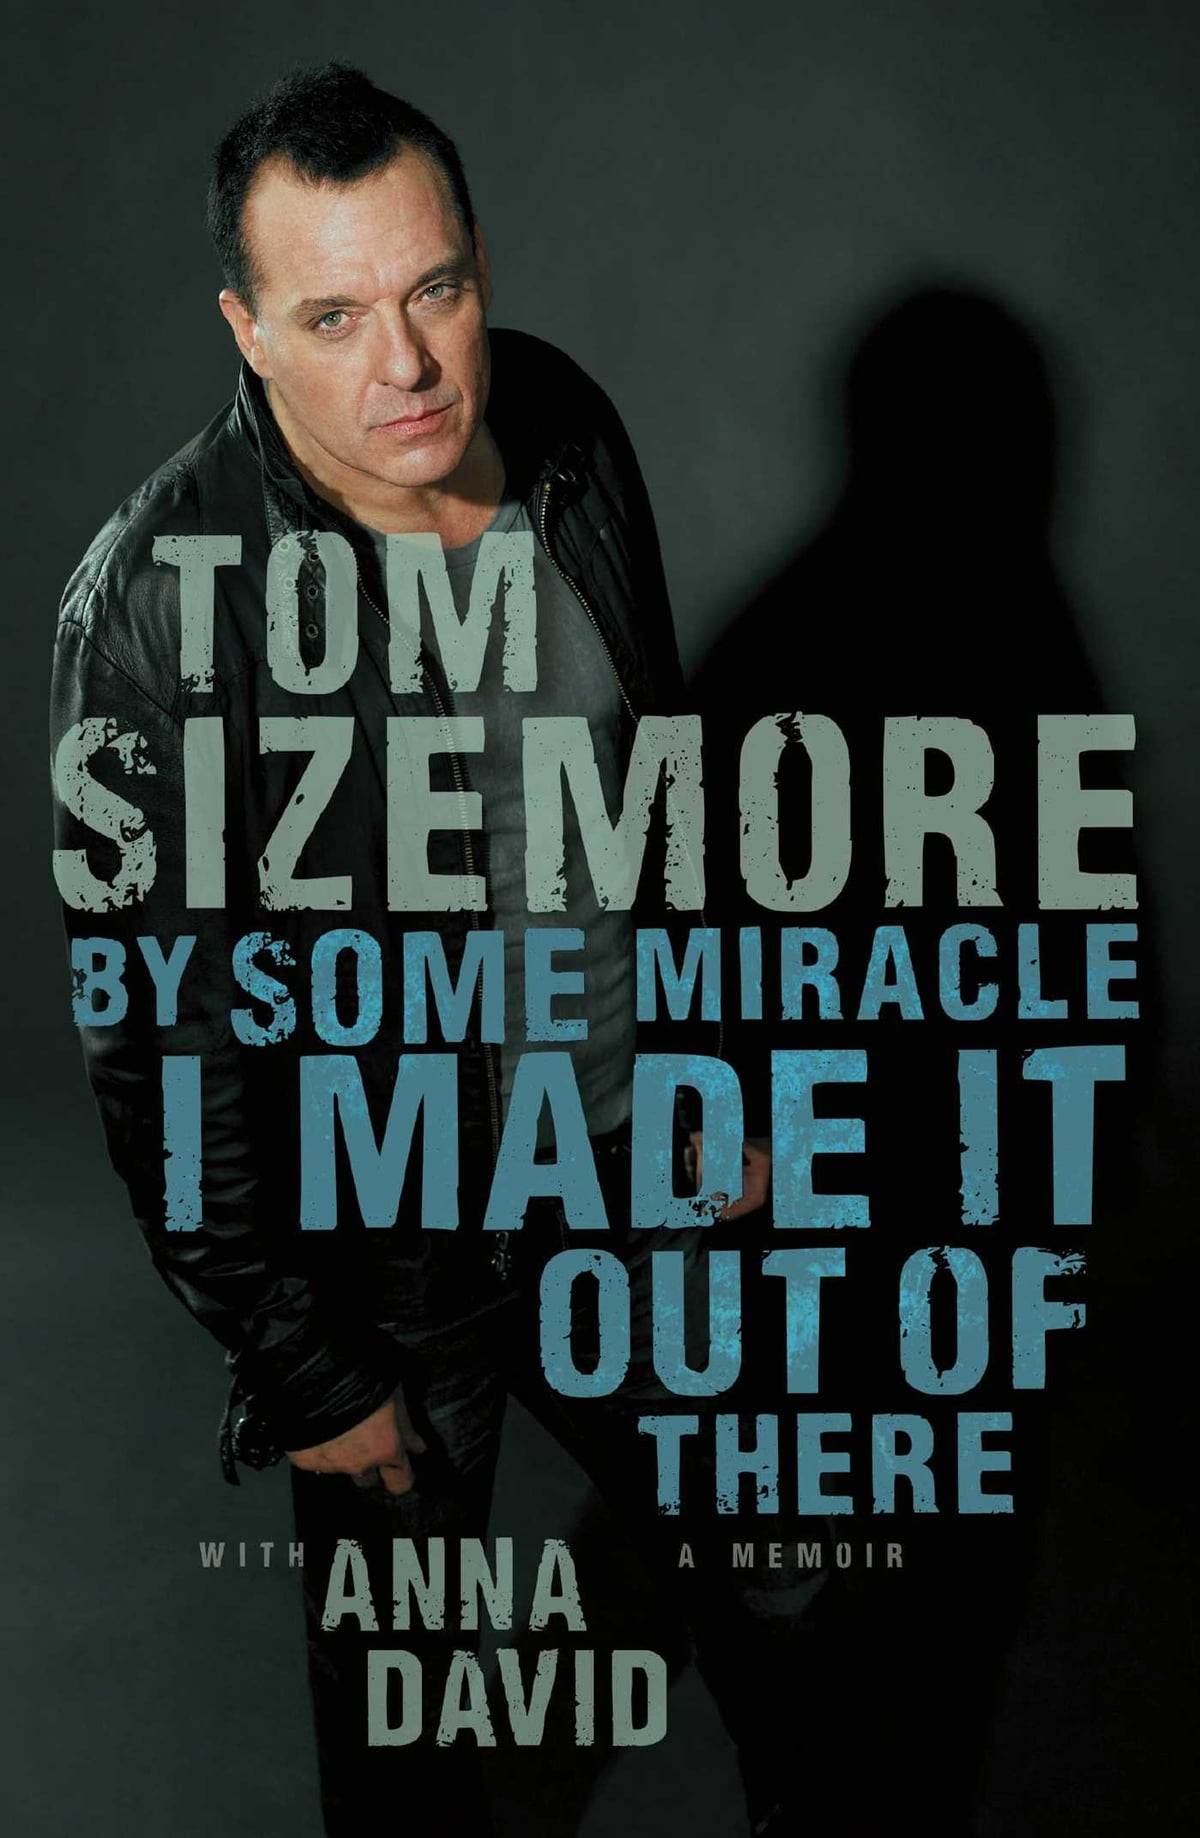 By some miracle i made it out of there ebook by tom sizemore by some miracle i made it out of there ebook by tom sizemore 9781451681697 rakuten kobo fandeluxe Document